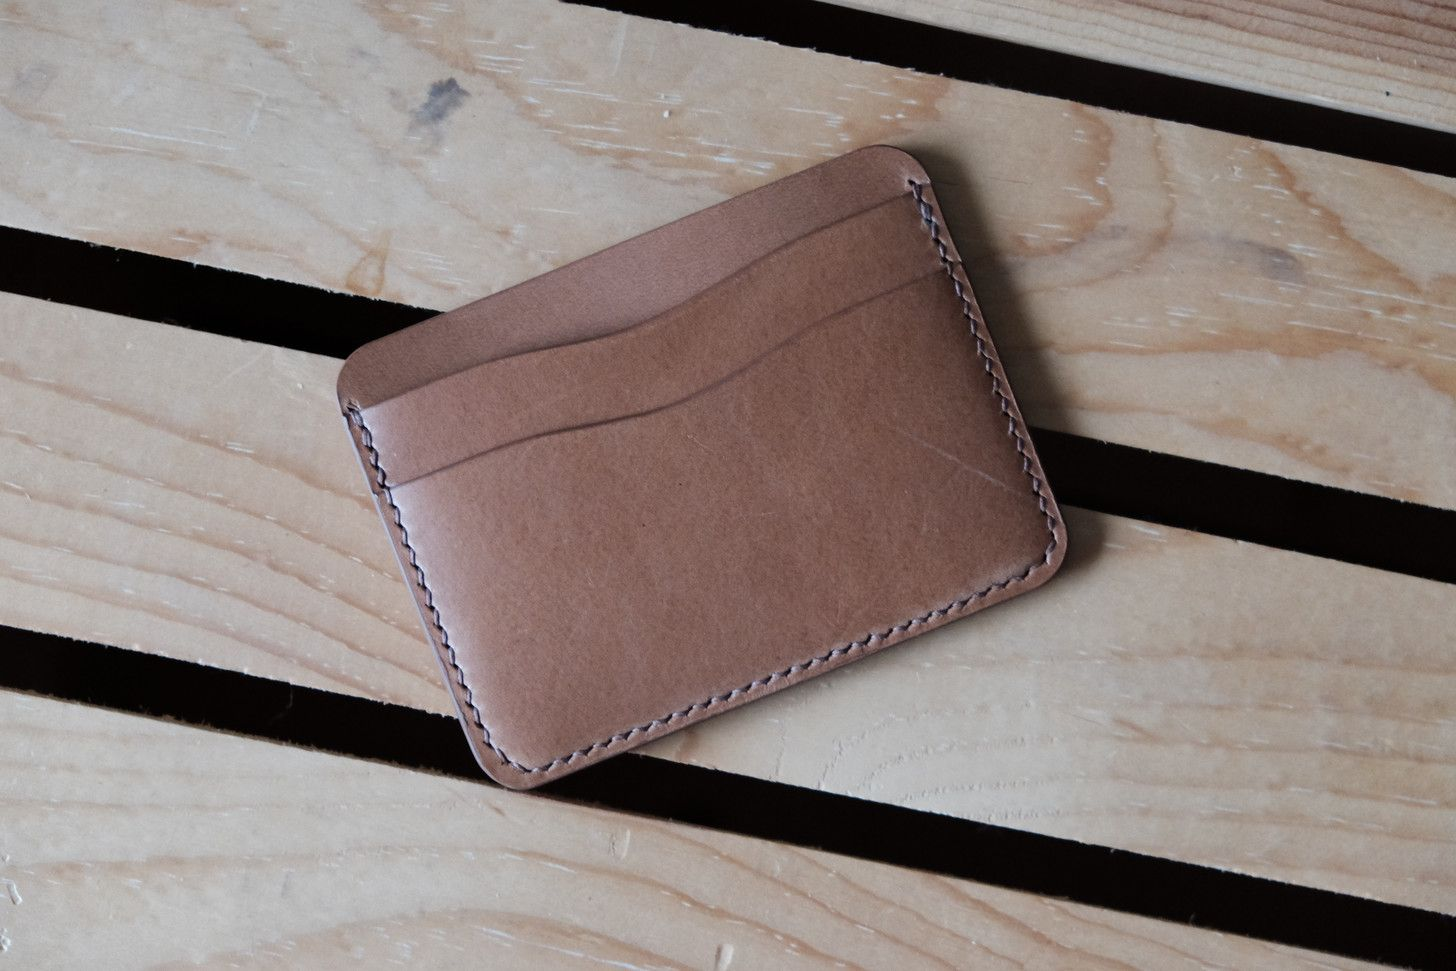 Making A Simple Card Holder Wallet Diy Leather Card Holder Leather Card Holder Pattern Card Holder Leather